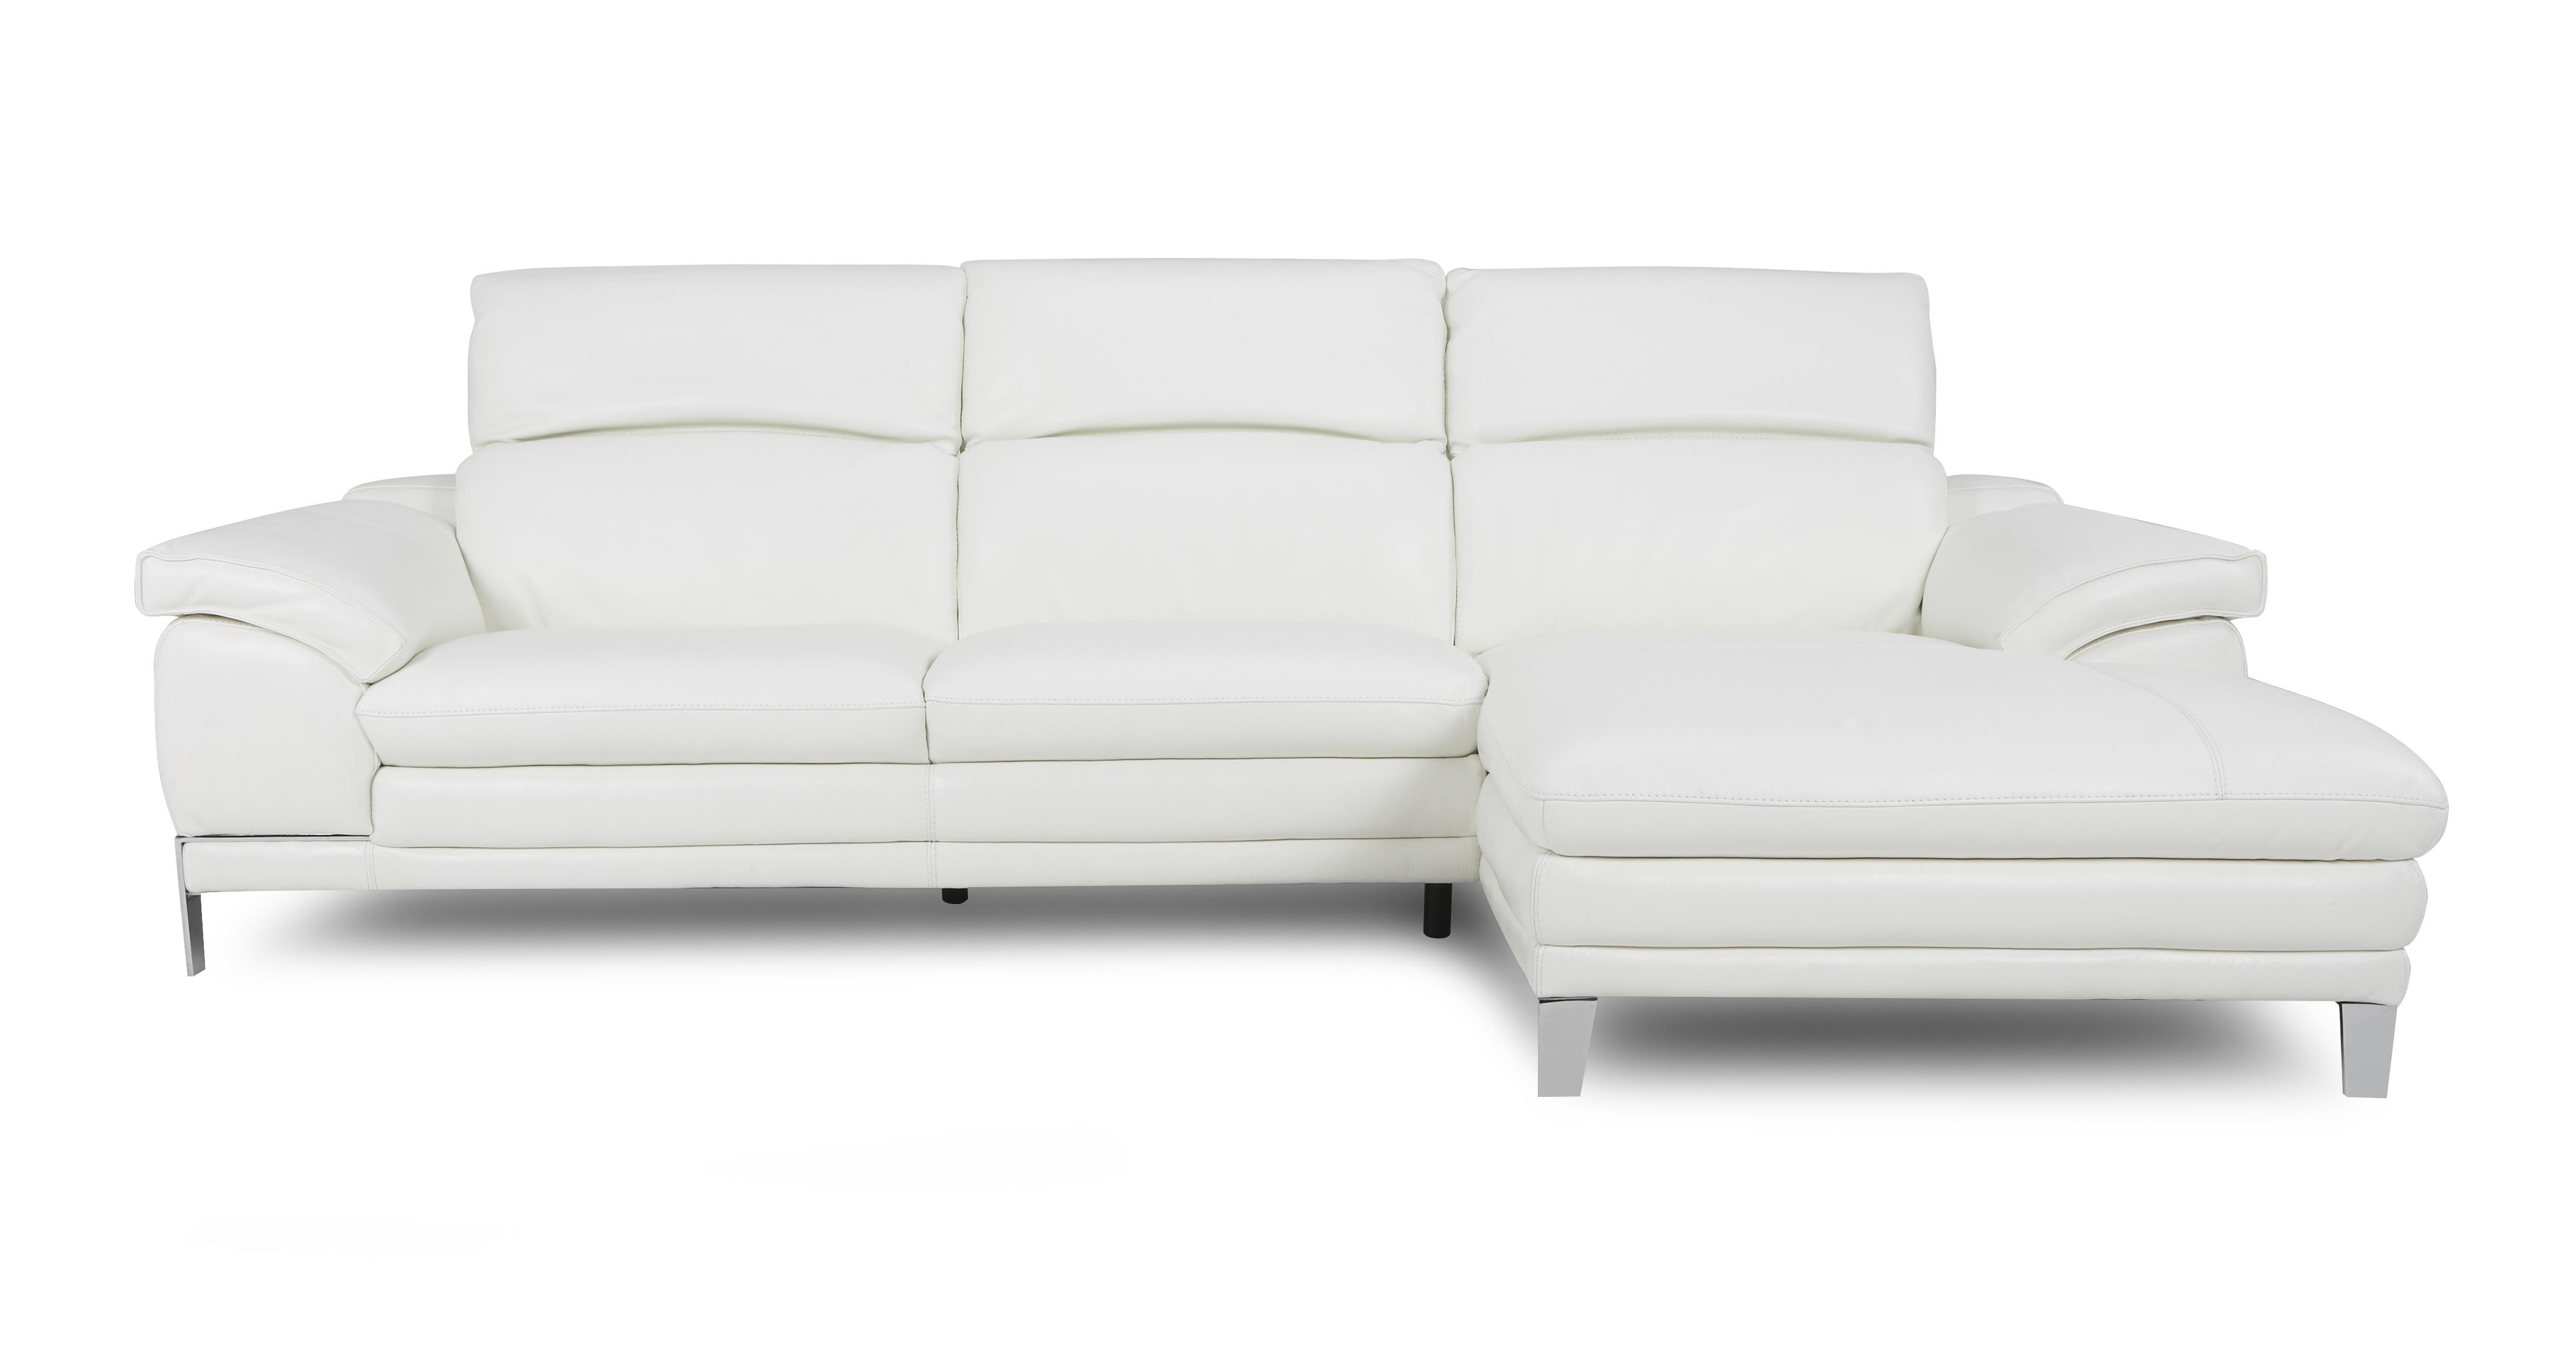 large chaise sofa dfs bobkona seattle microfiber and loveseat 2 piece set in chocolate color white brokeasshome